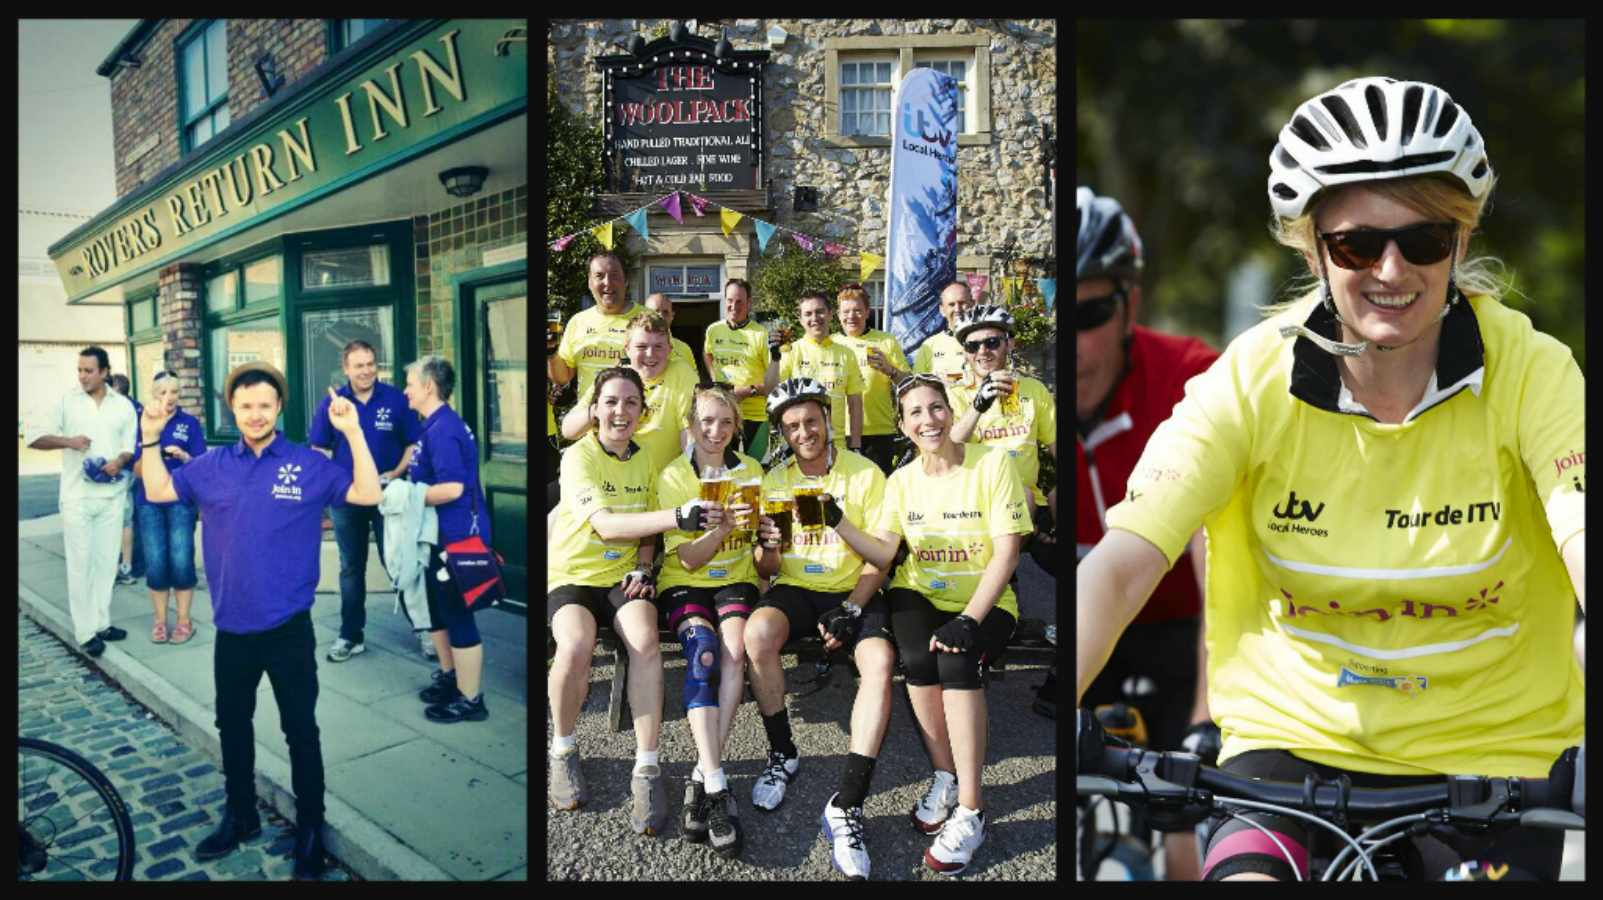 Emmerdale and Corrie soap stars joined up to ride the Tour de ITV as part of the TV channel's Local Heroes campaign